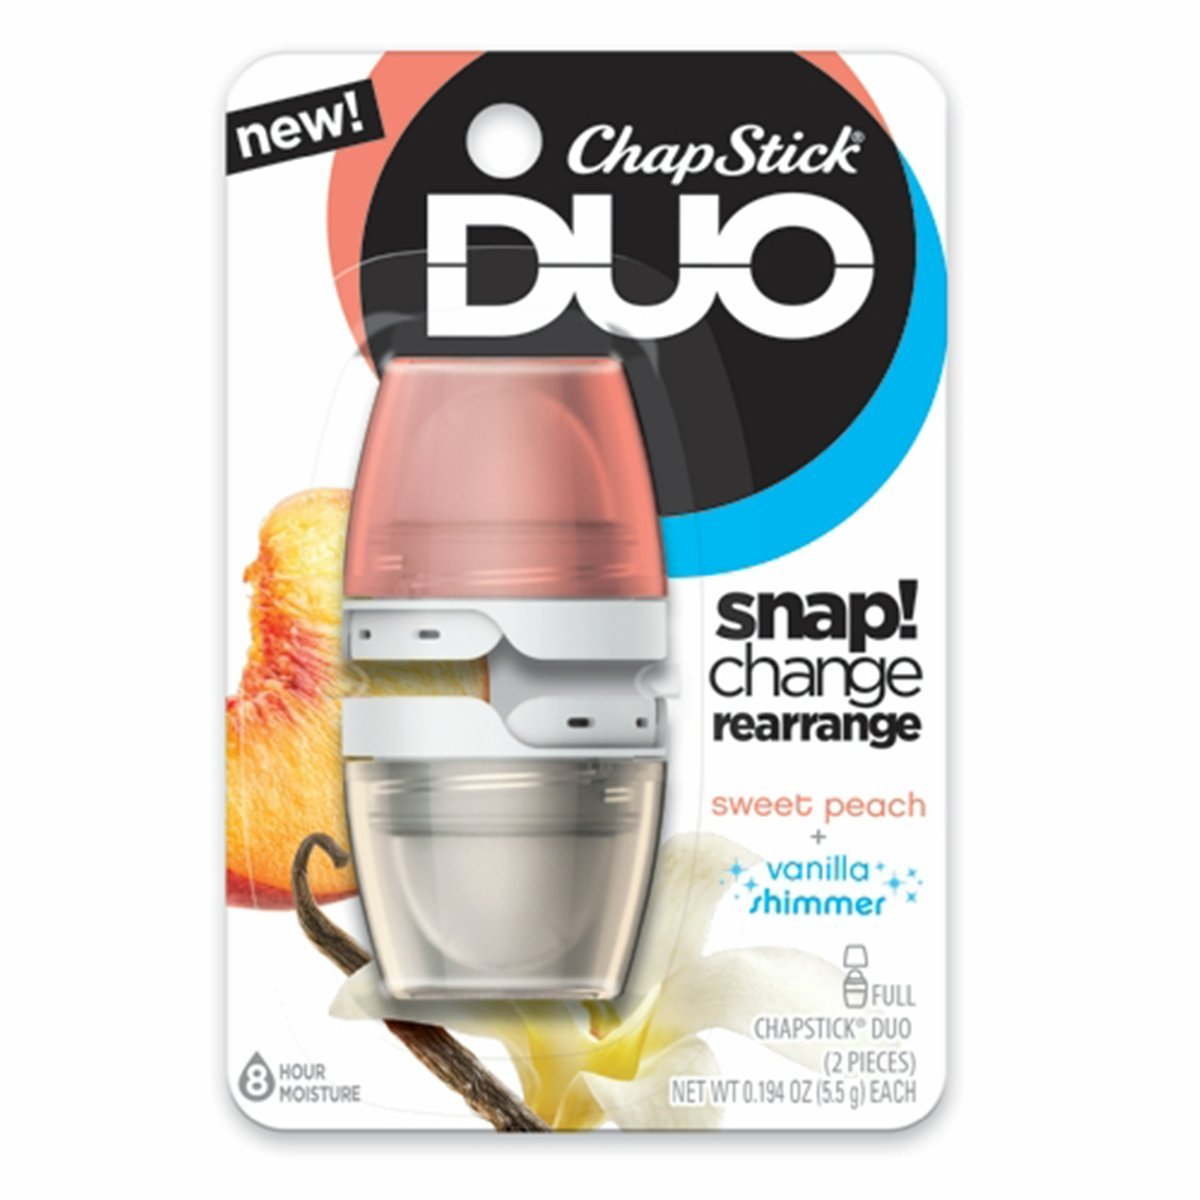 ChapStick DUO Full Lip Balm, 8 Hour Moisture, 0.194 Ounce Each (Sweet Peach & Vanilla Shimmer Flavors, 1 Blister Pack of 2 Pieces)